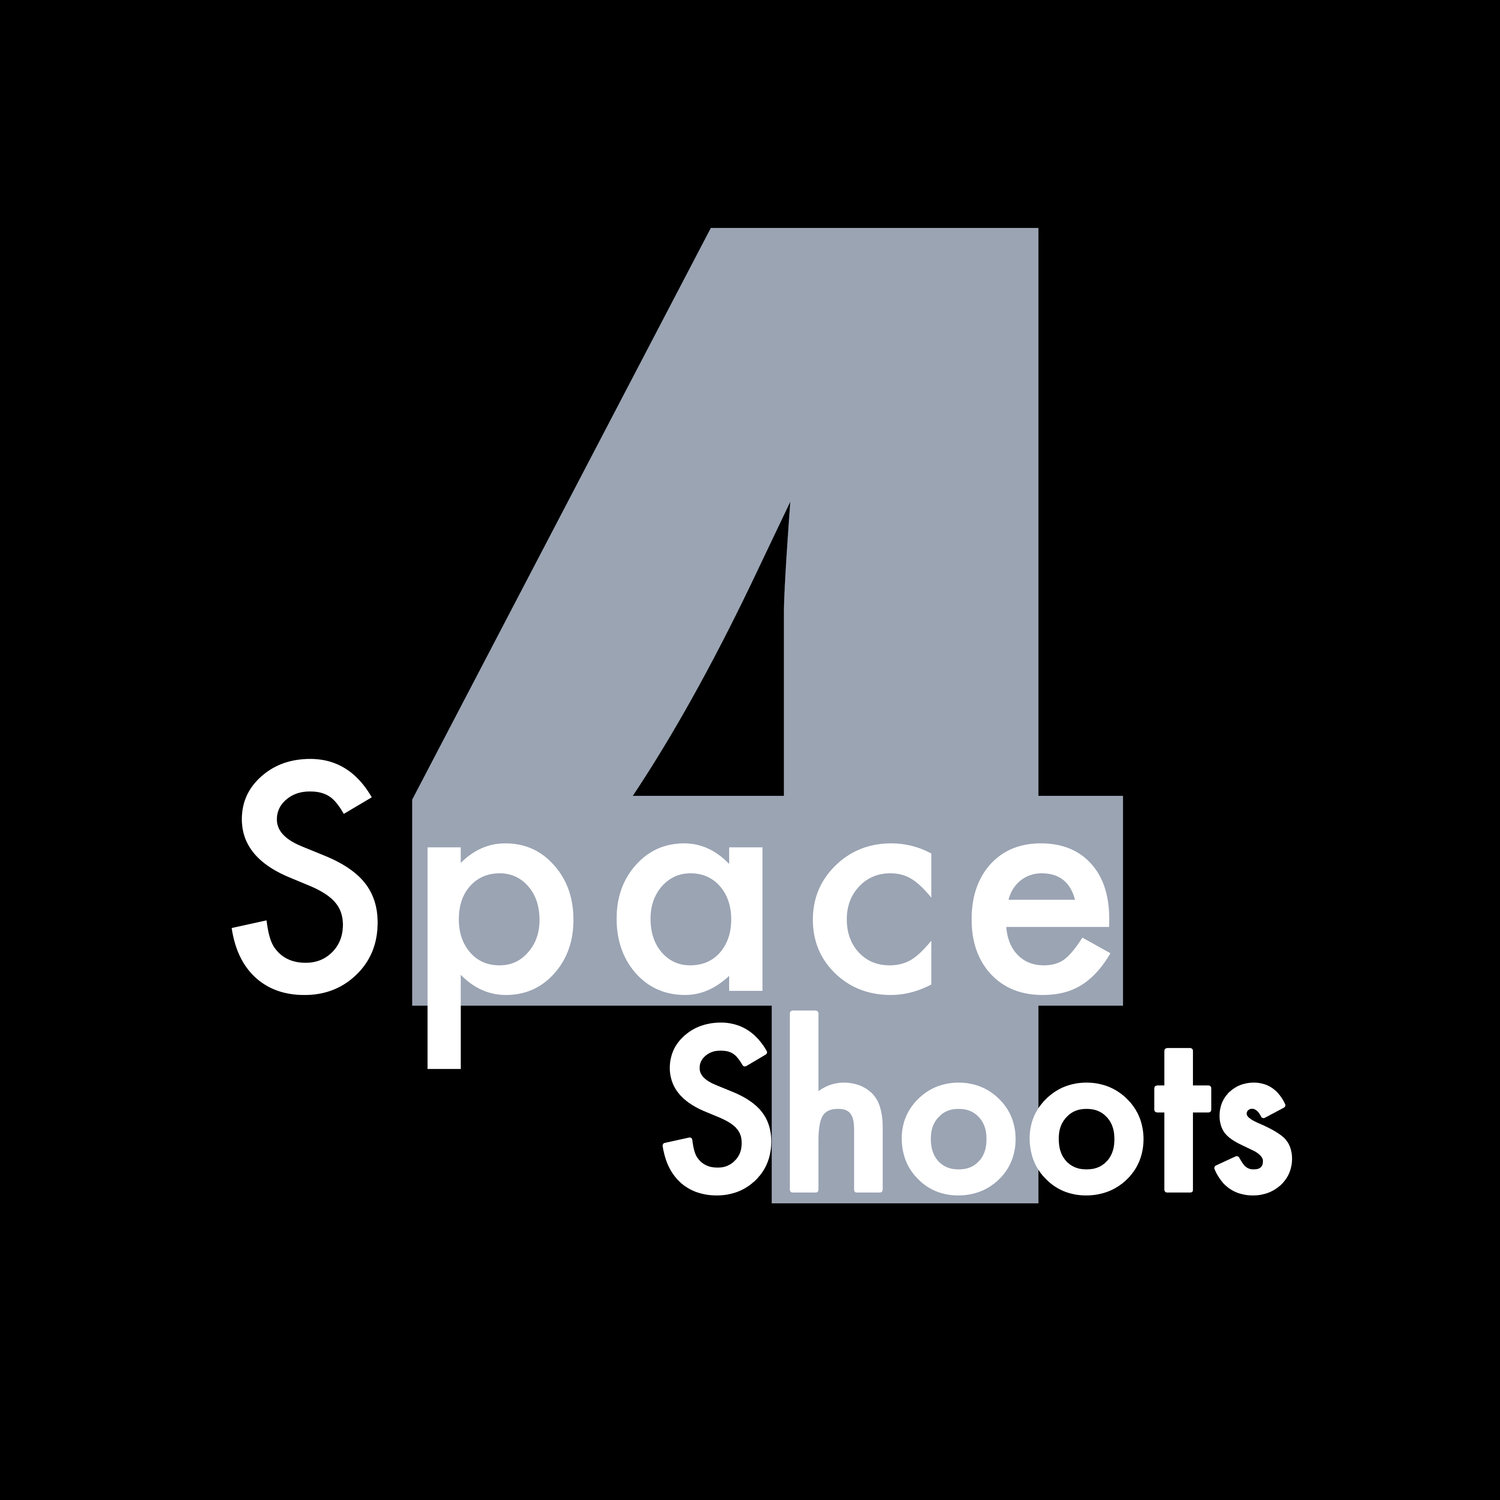 Space 4 Shoots